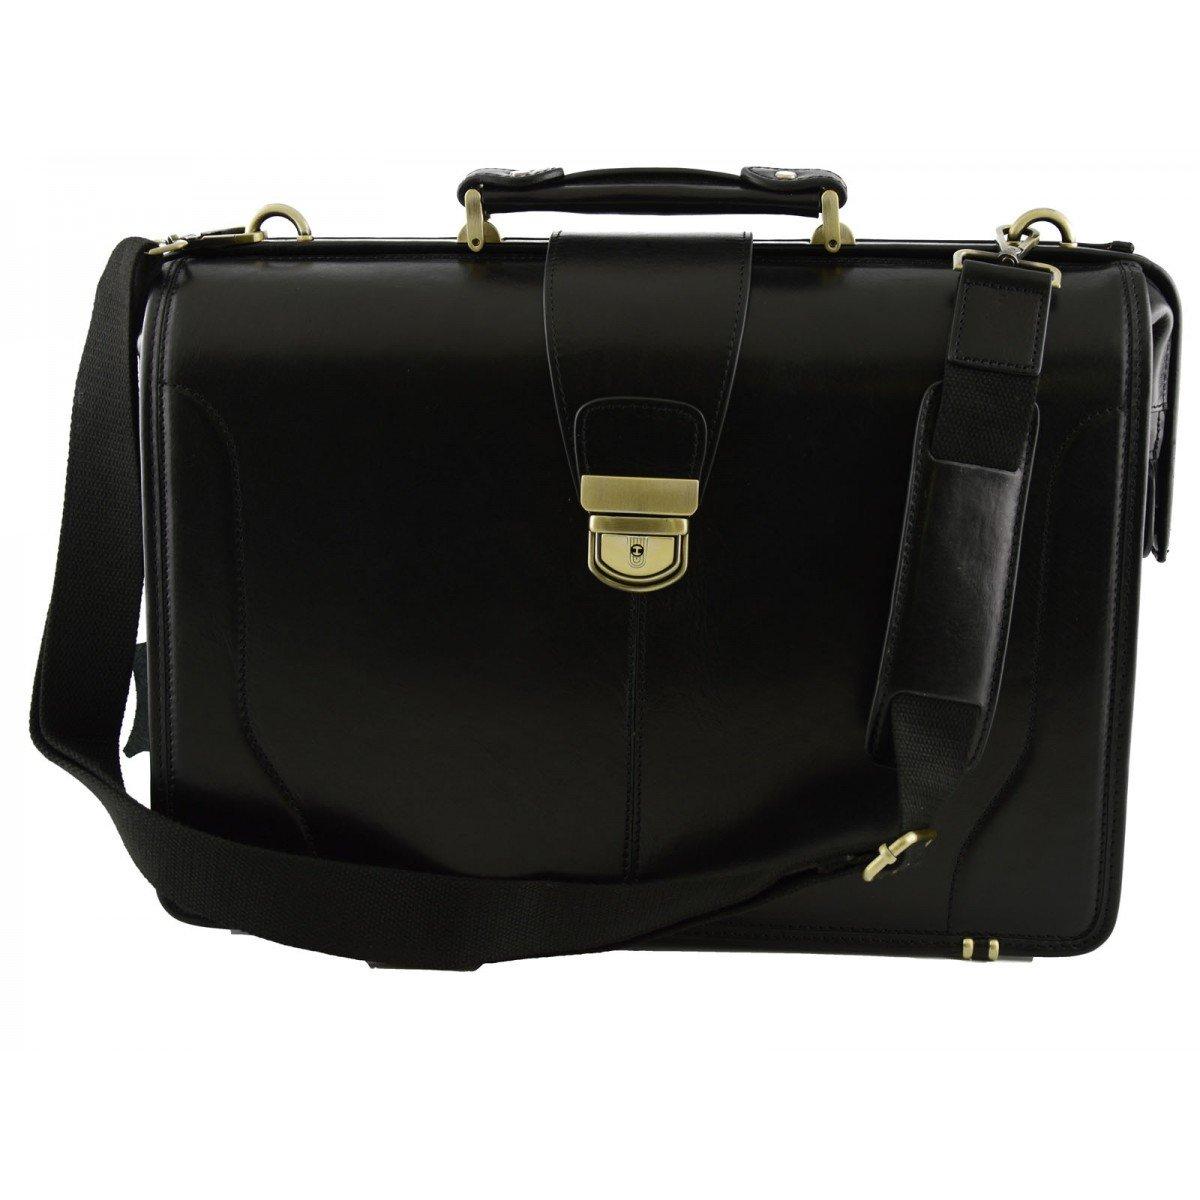 Made In Italy Genuine Leather Doctor Bag, Three Compartments Color Black - Business Bag B01MXVZQIY